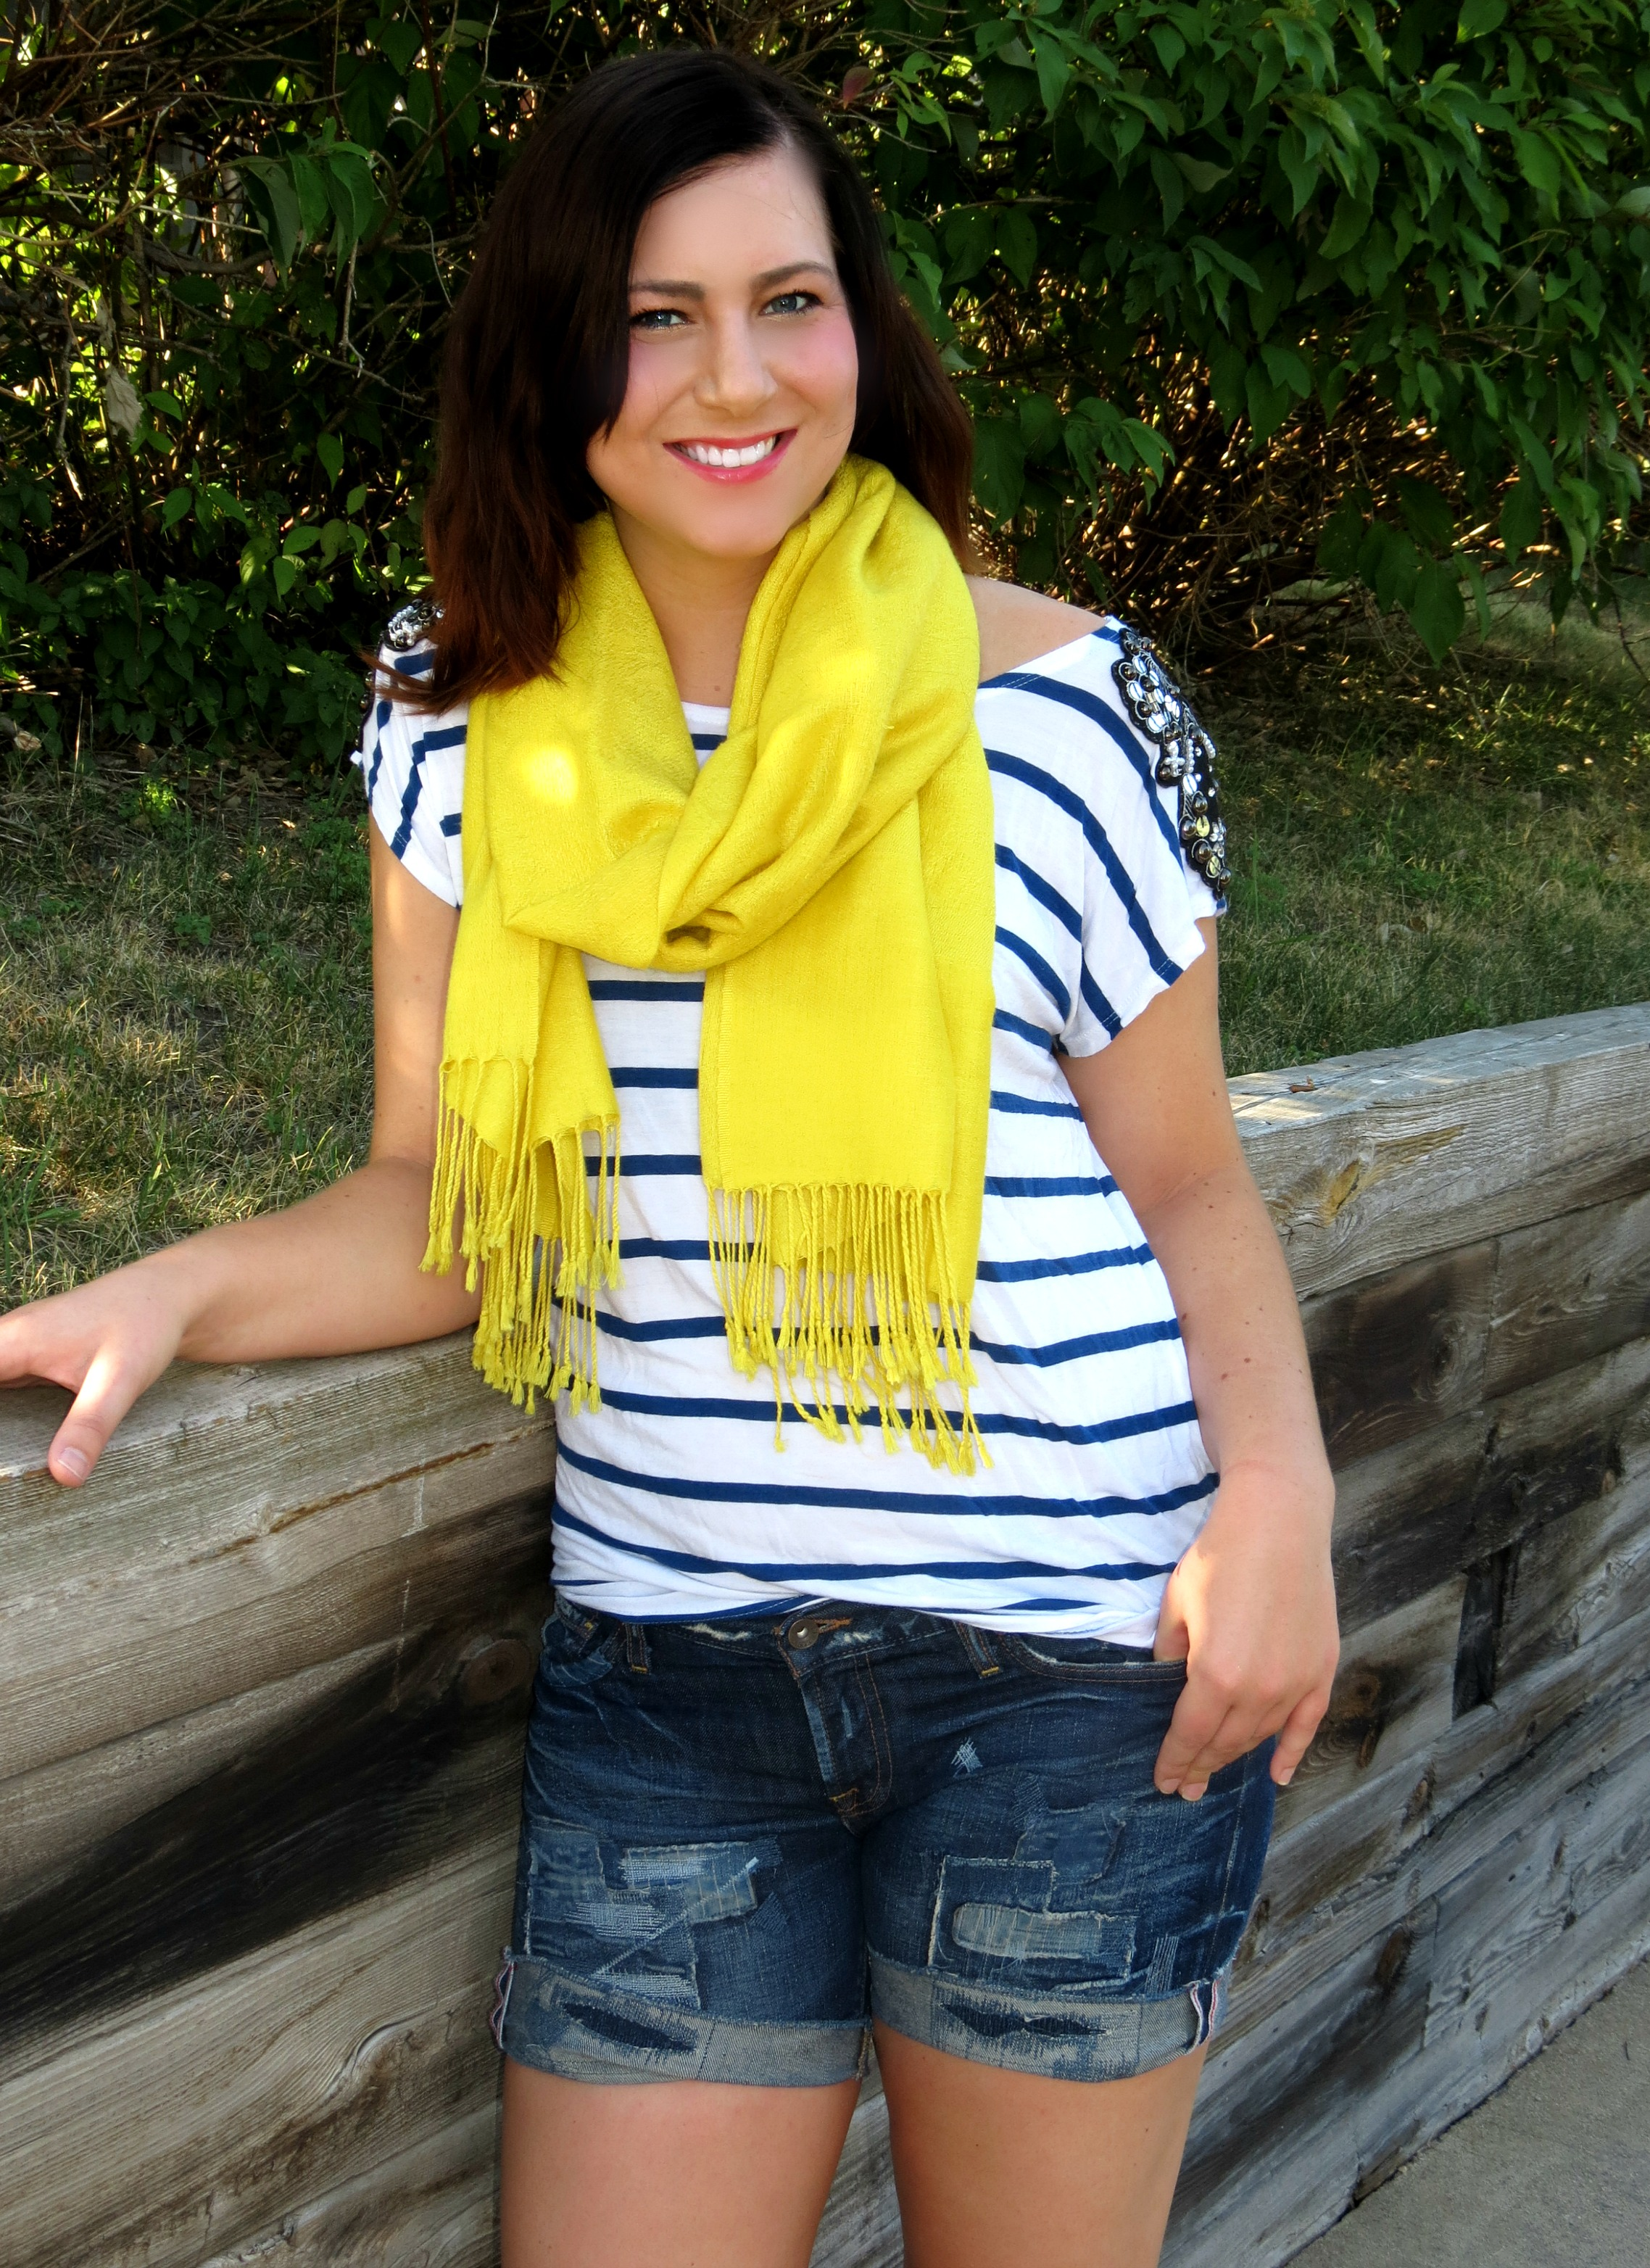 yellowscarf